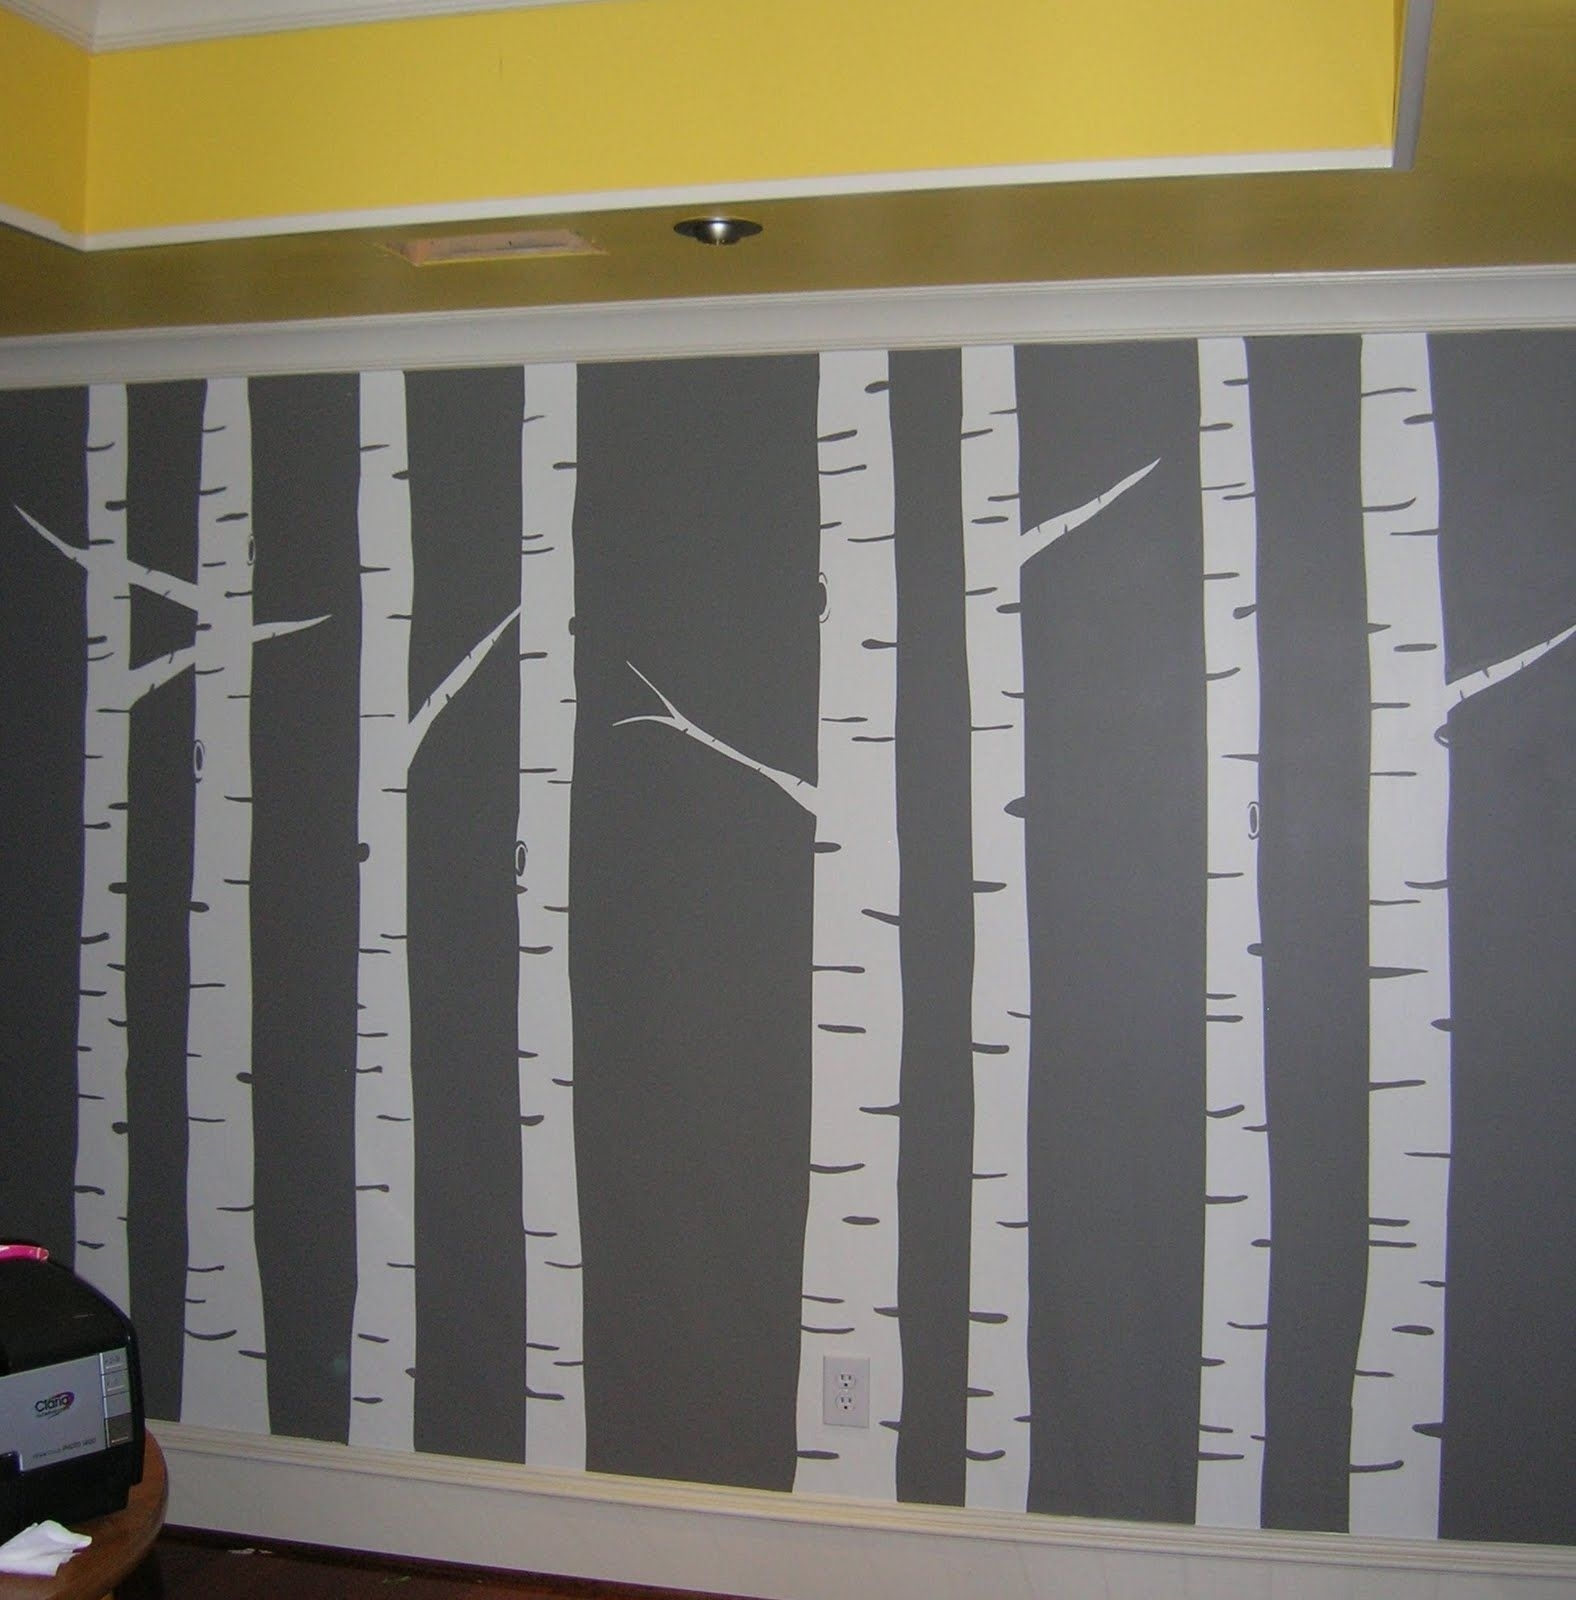 Diy Wall Mural | Diy Wall Painted Birch Tree Wall Art Mural Gray Regarding Current Birch Tree Wall Art (View 17 of 20)